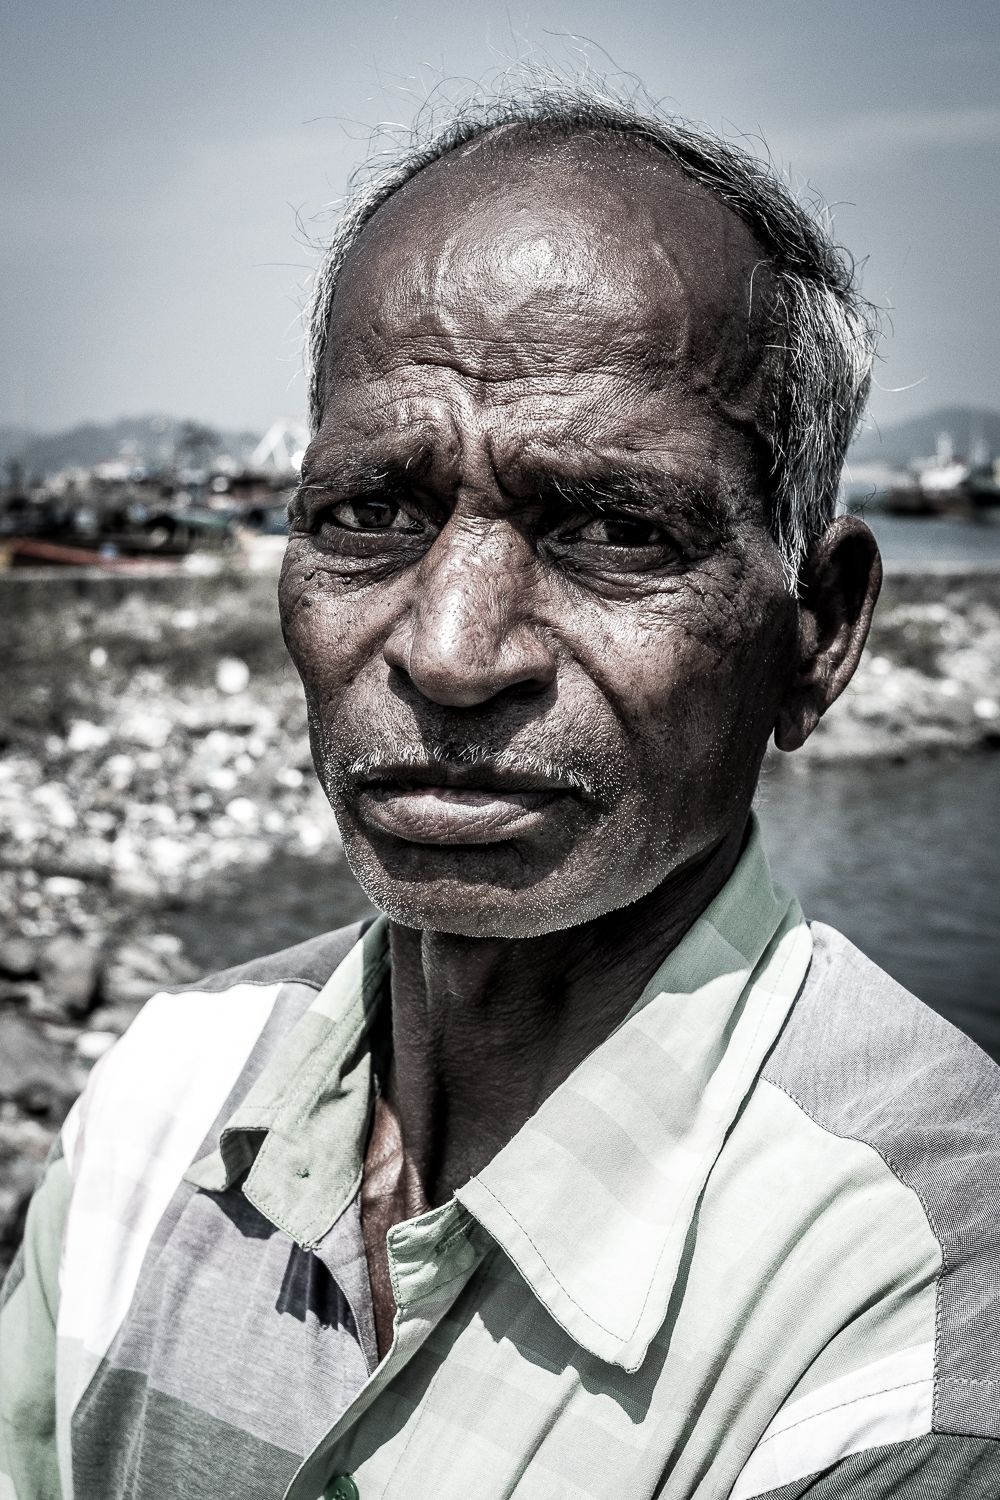 Fisherman, Port Blair, Andaman Island, India